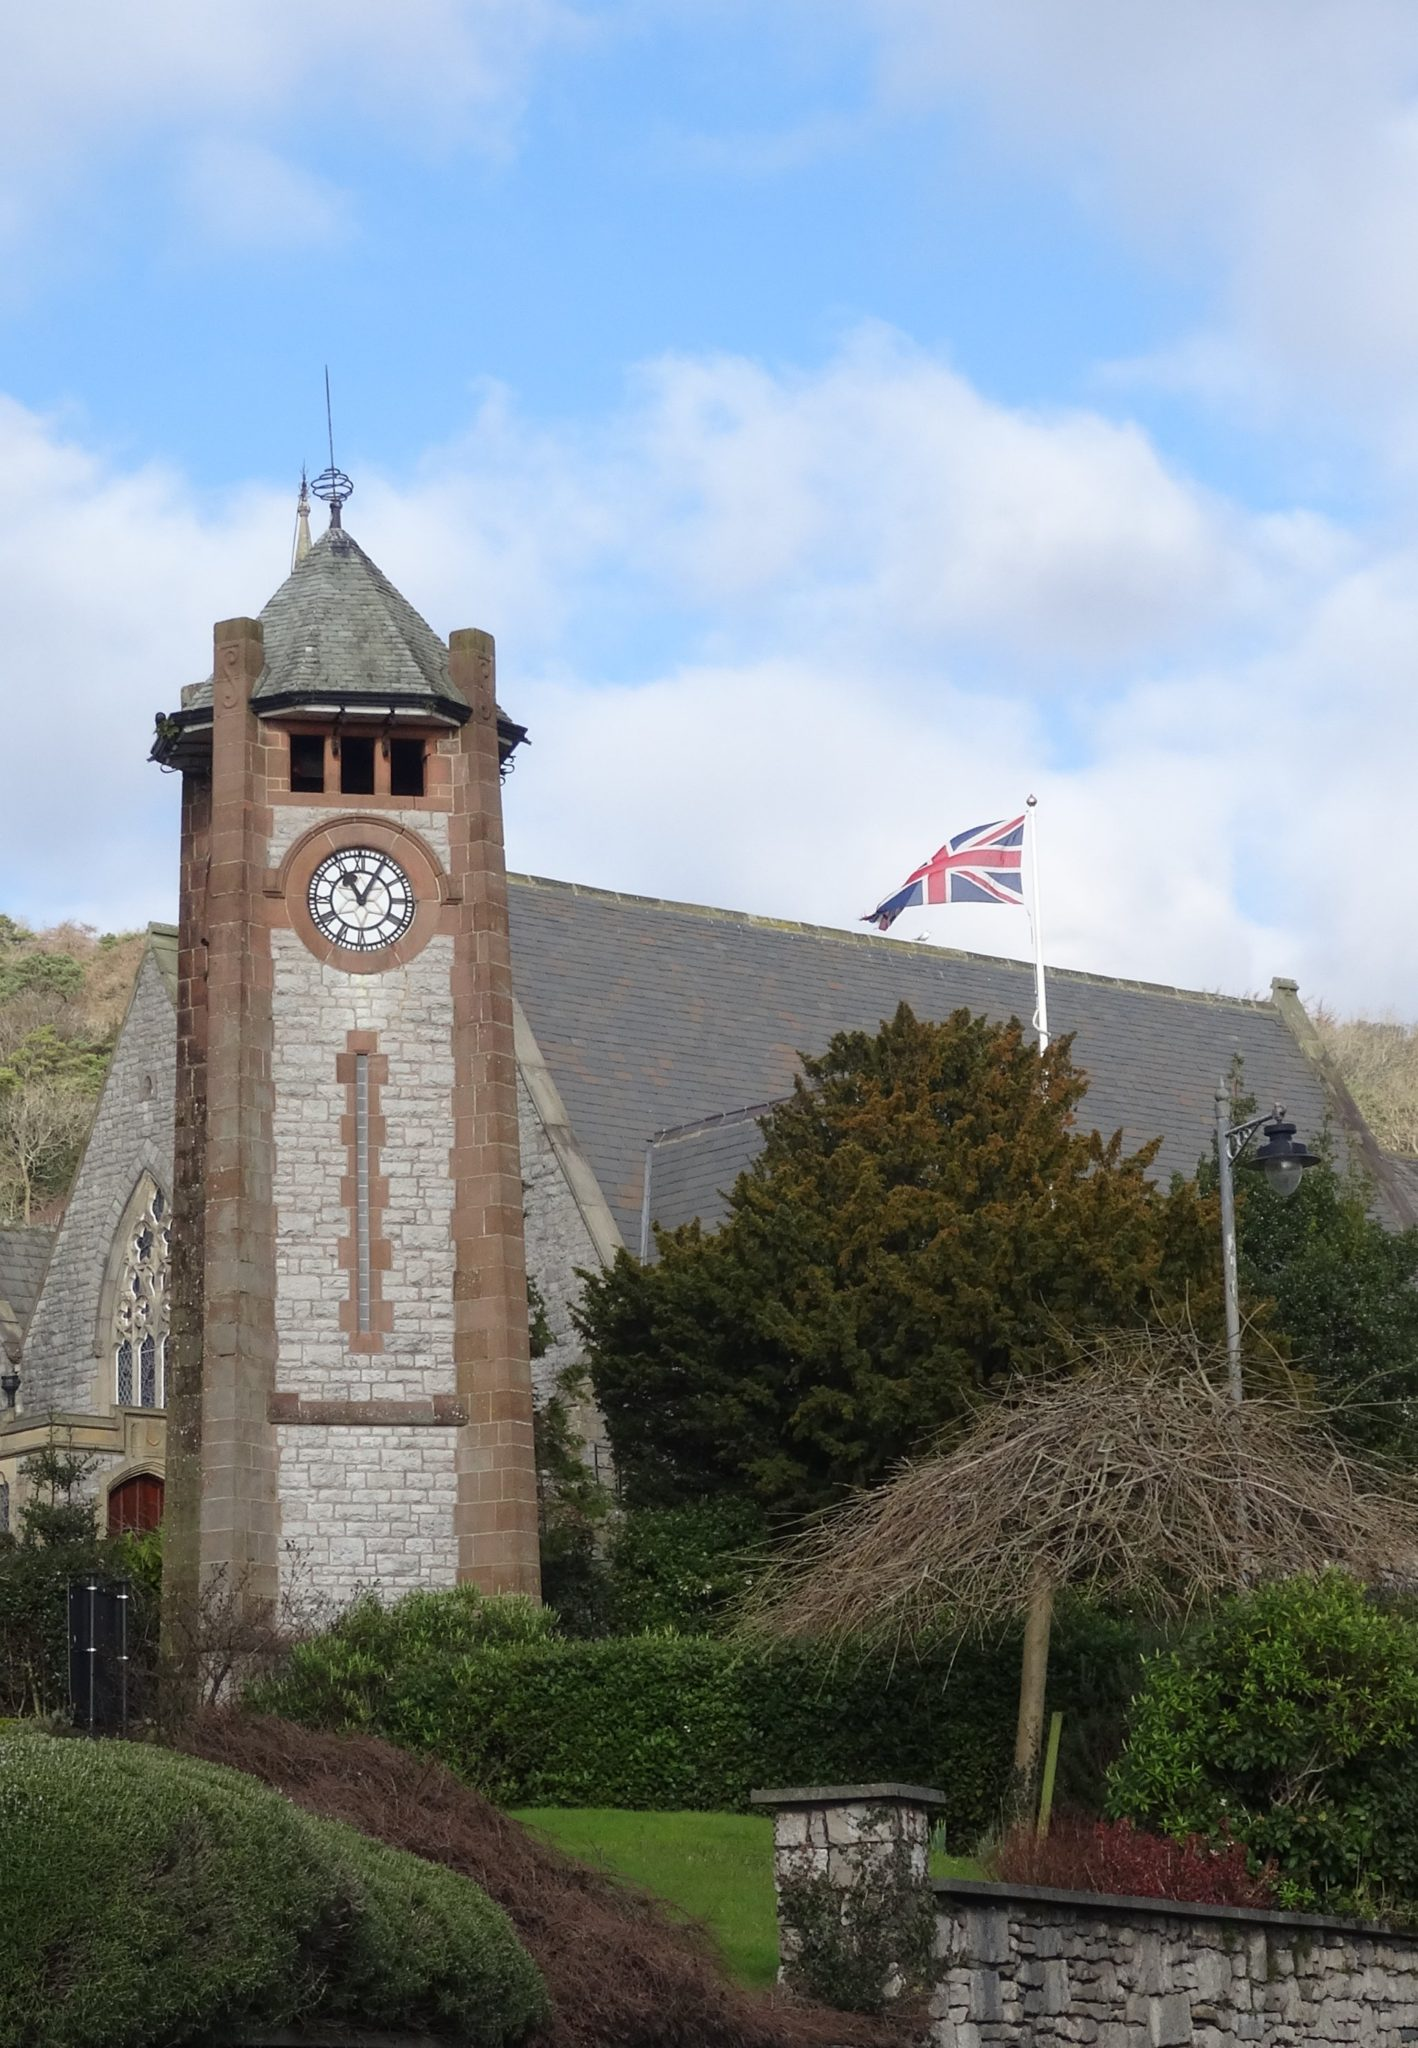 Grange Clock Tower